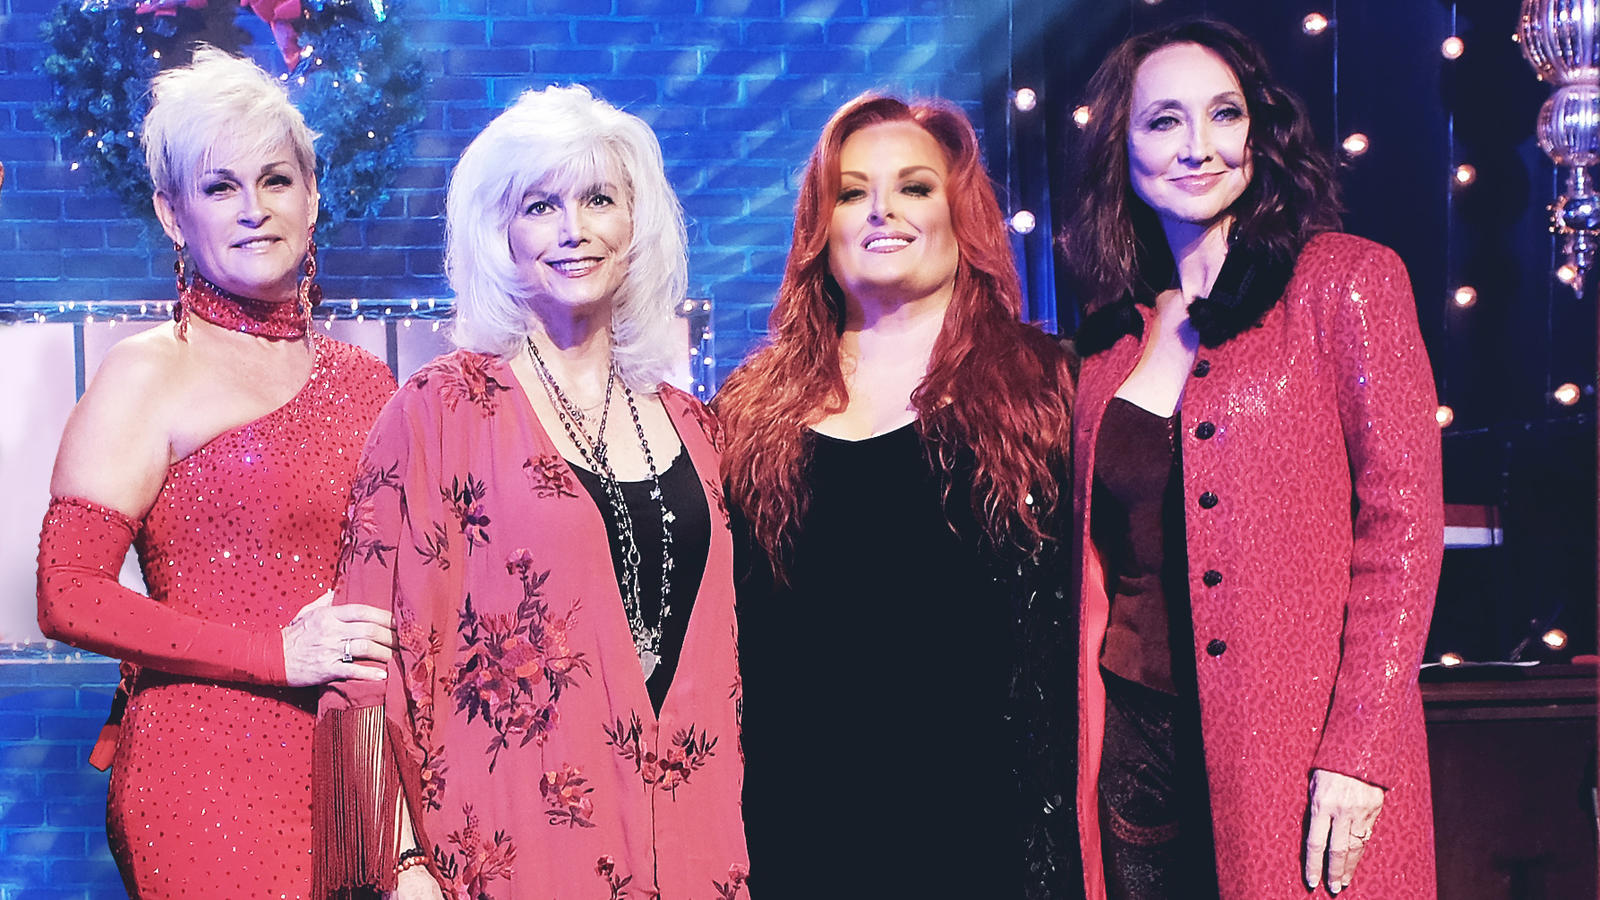 """13-time Grammy Award Winner Emmylou Harris Talks About Her Dog Rescue Bonaparte's Retreat and Performing on getTV's """"A Nashville Christmas"""""""